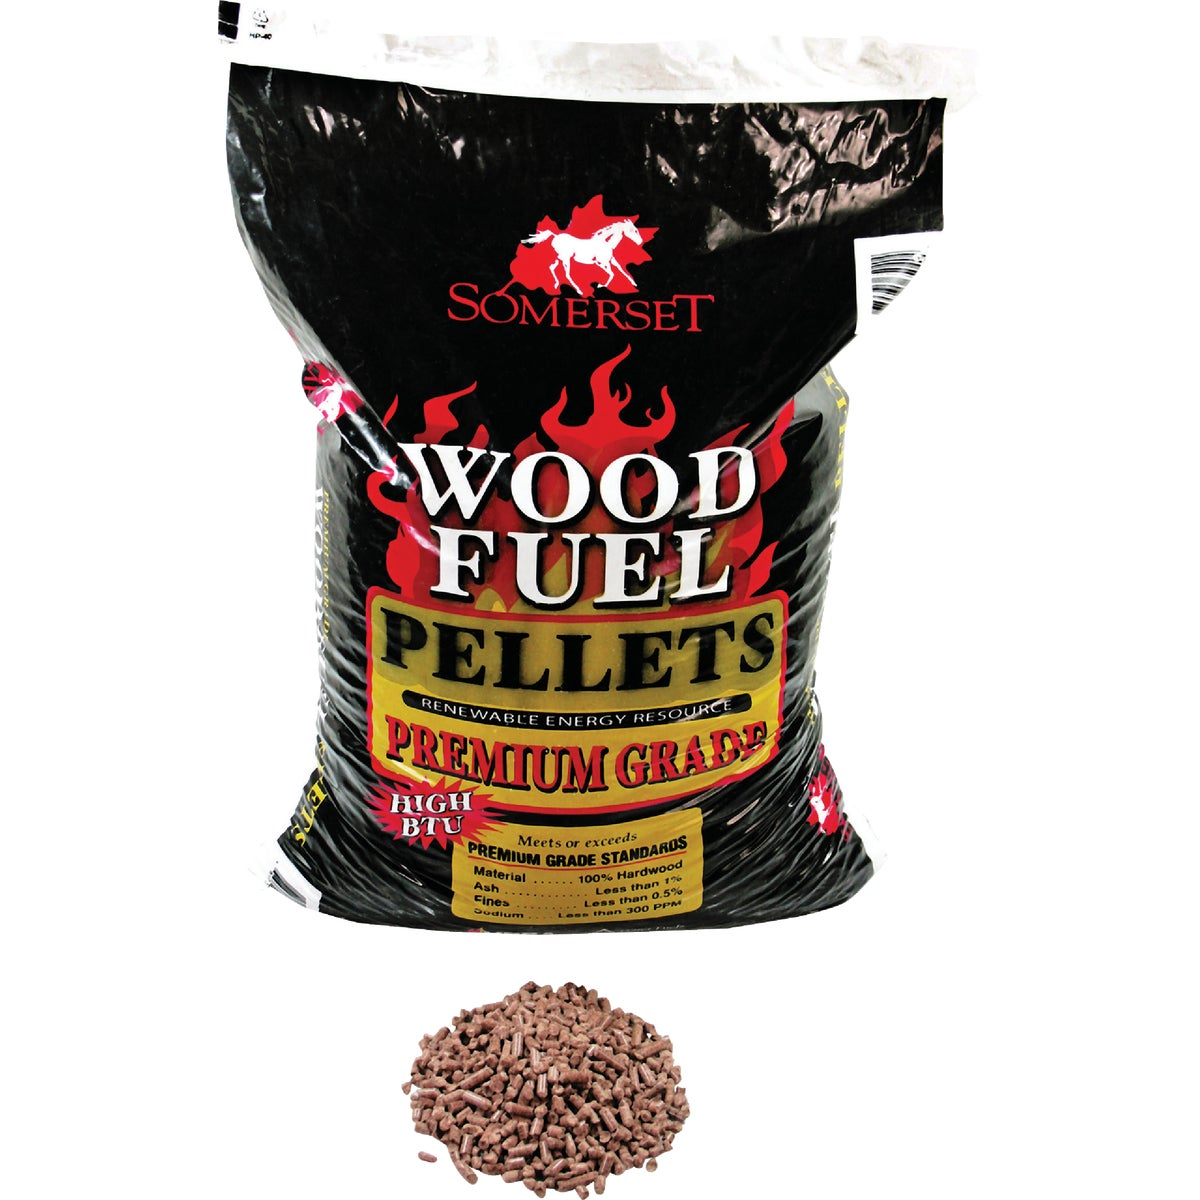 40LB BAG WOOD PELLET - P90001 by Somerset